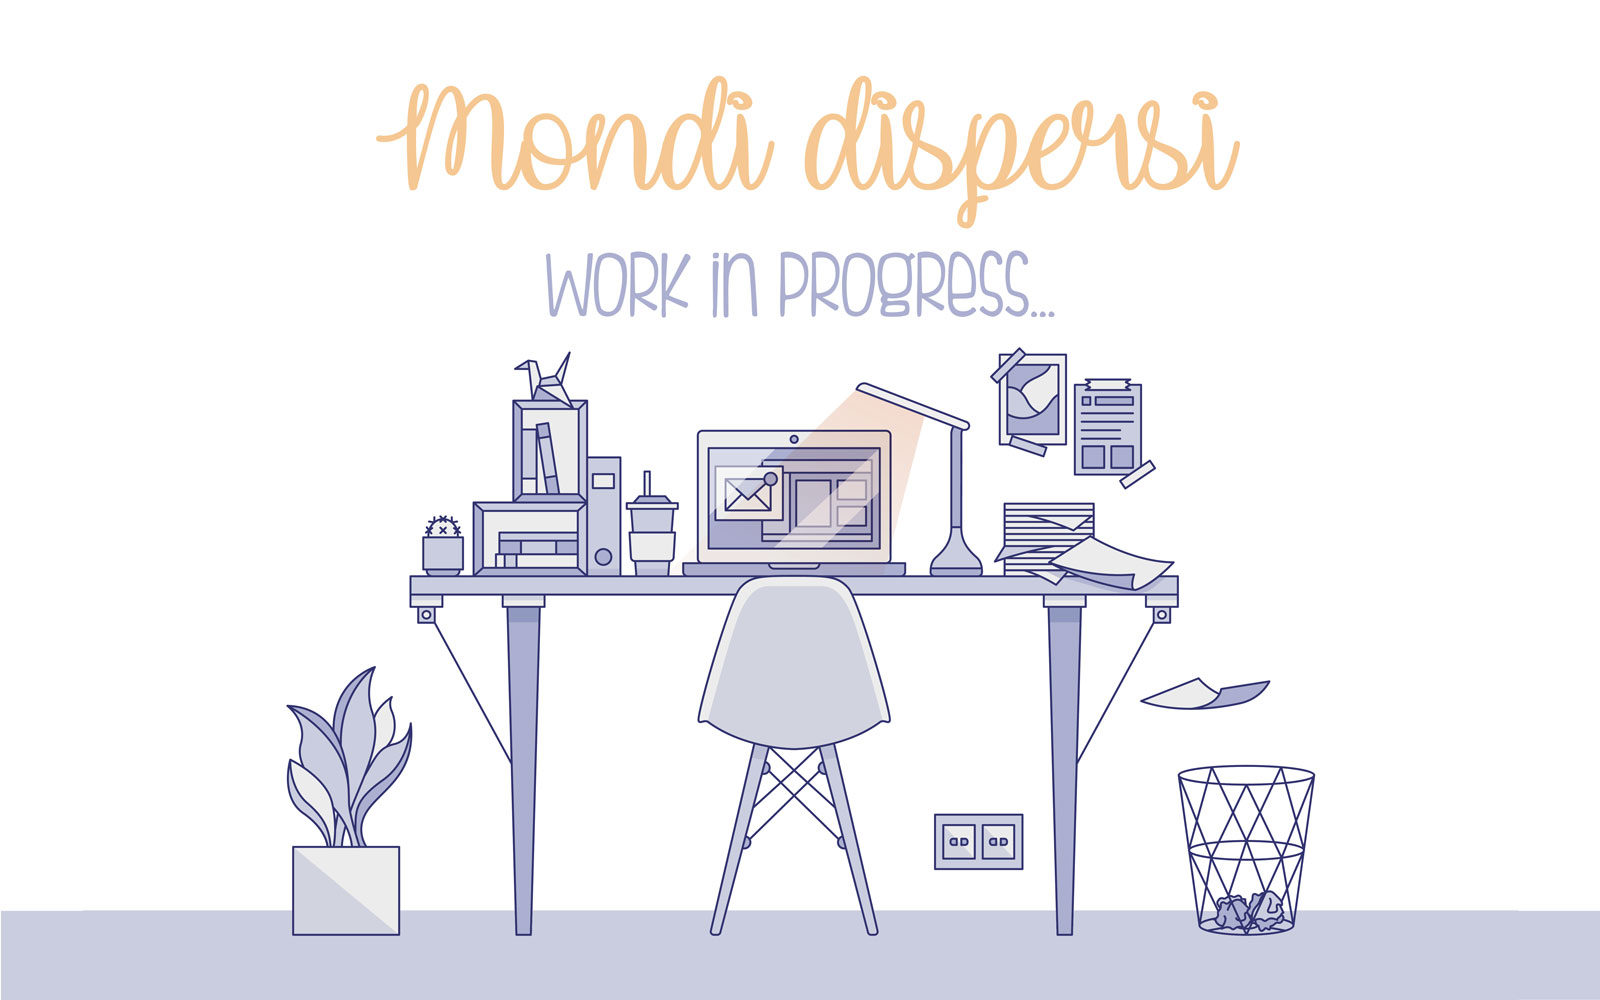 md-workinprogress